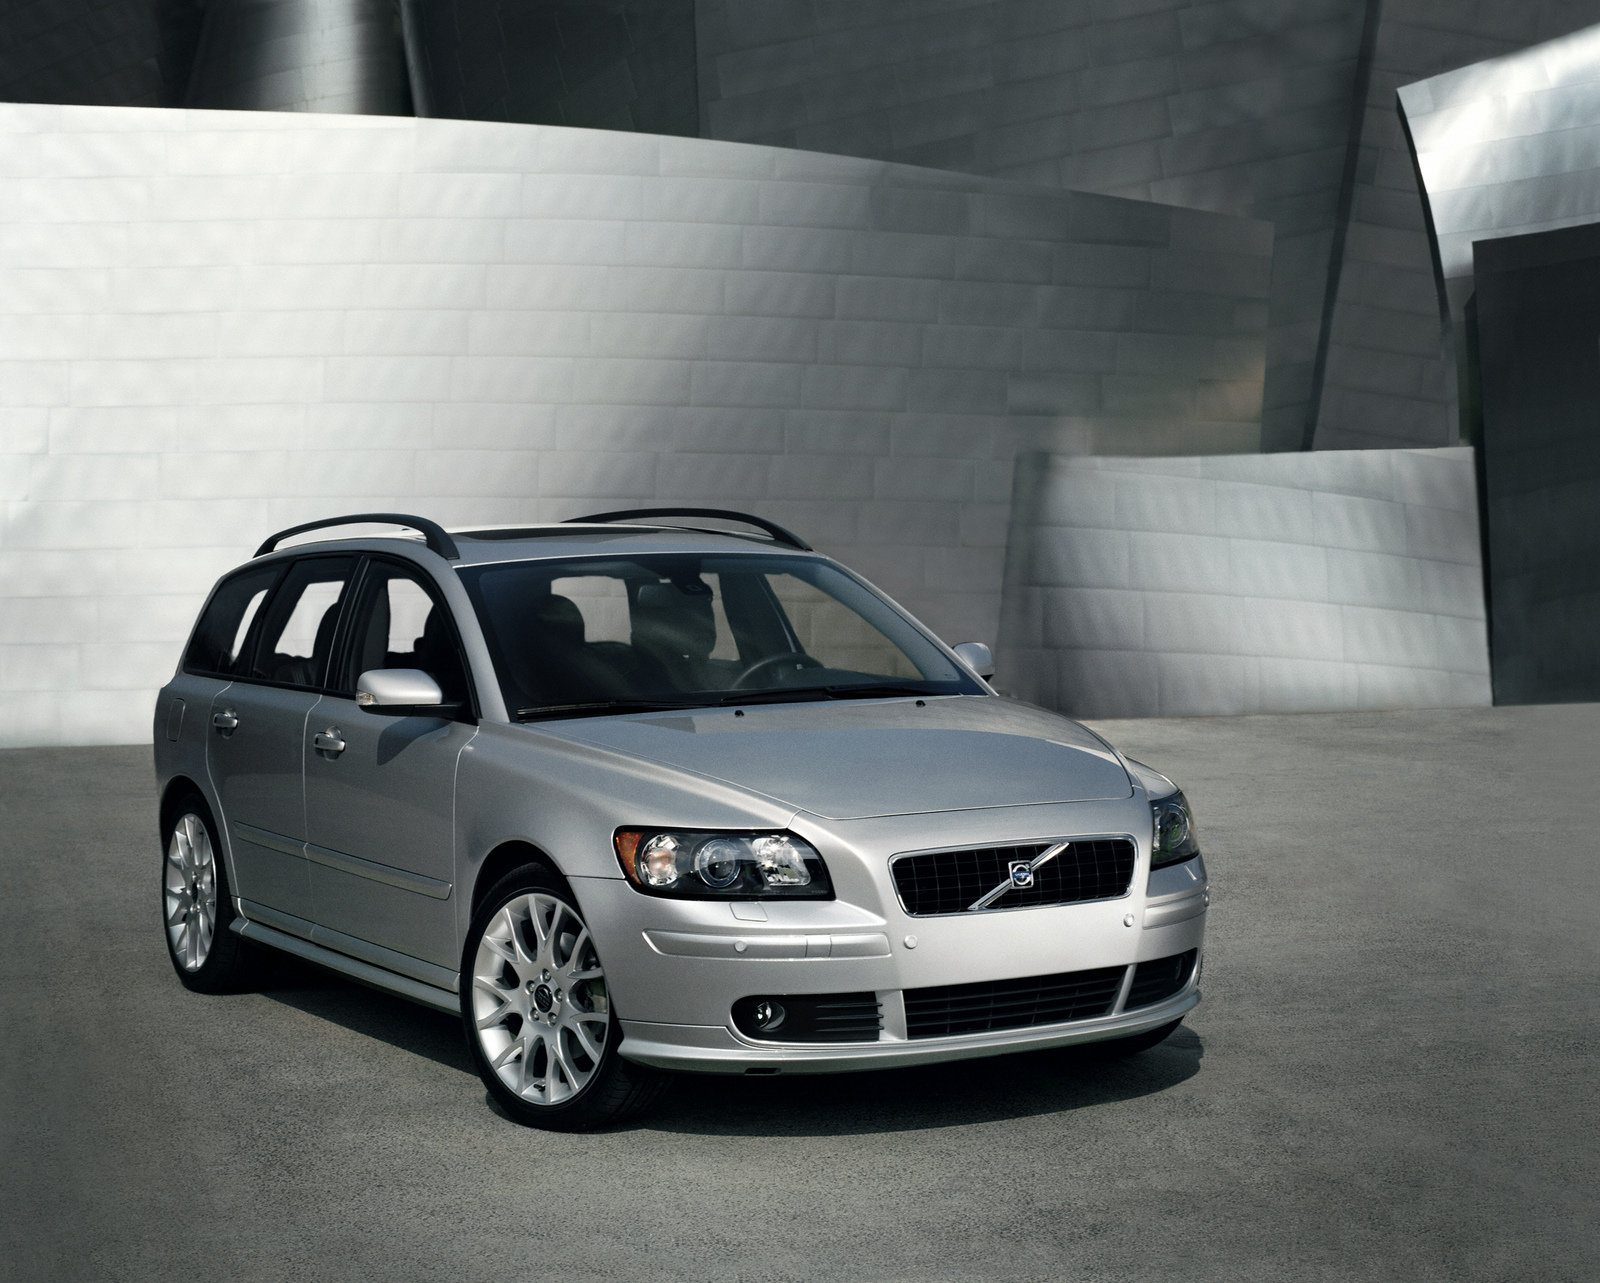 2006 Volvo V50 Review - Top Speed